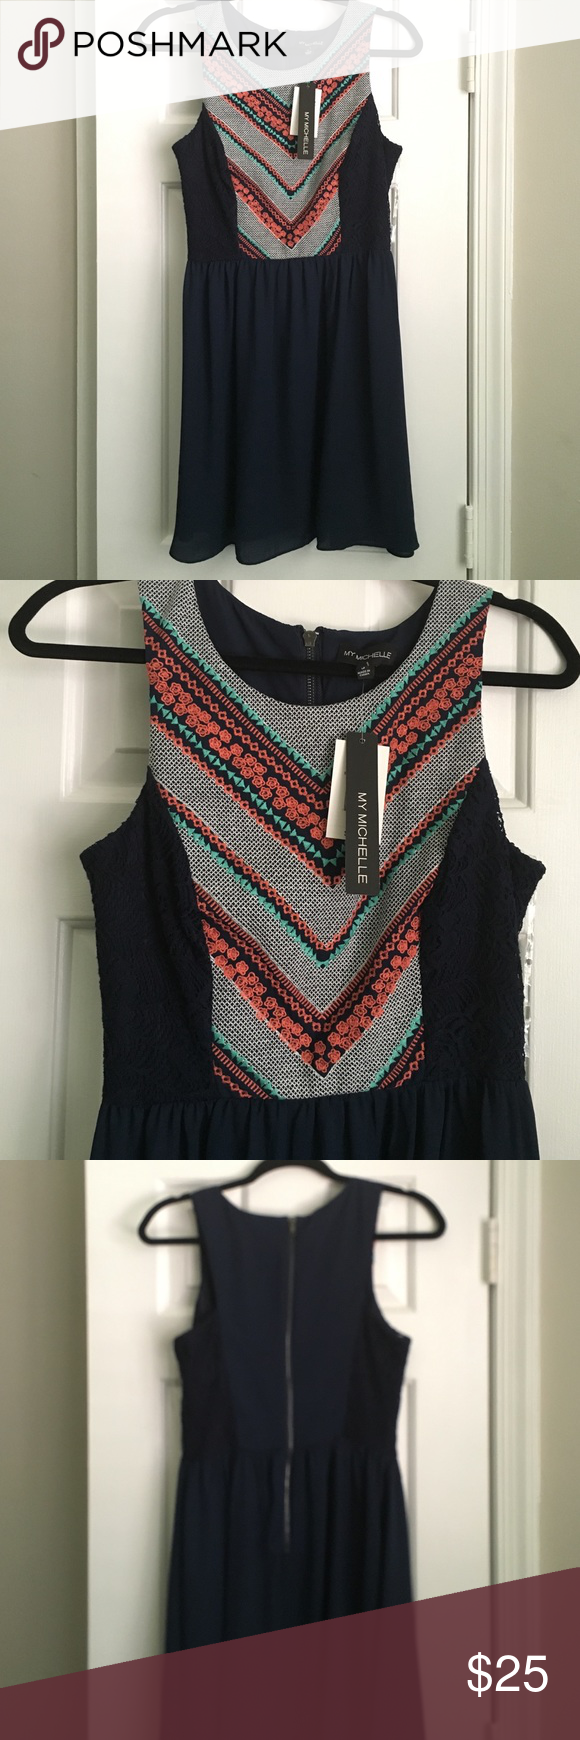 Navy Blue with Coral, Teal and Lace Accents Dress Beautiful navy blue dress with coral, teal and lace accents. Perfect for a summer wedding or event. Never worn. My Michelle Dresses Mini